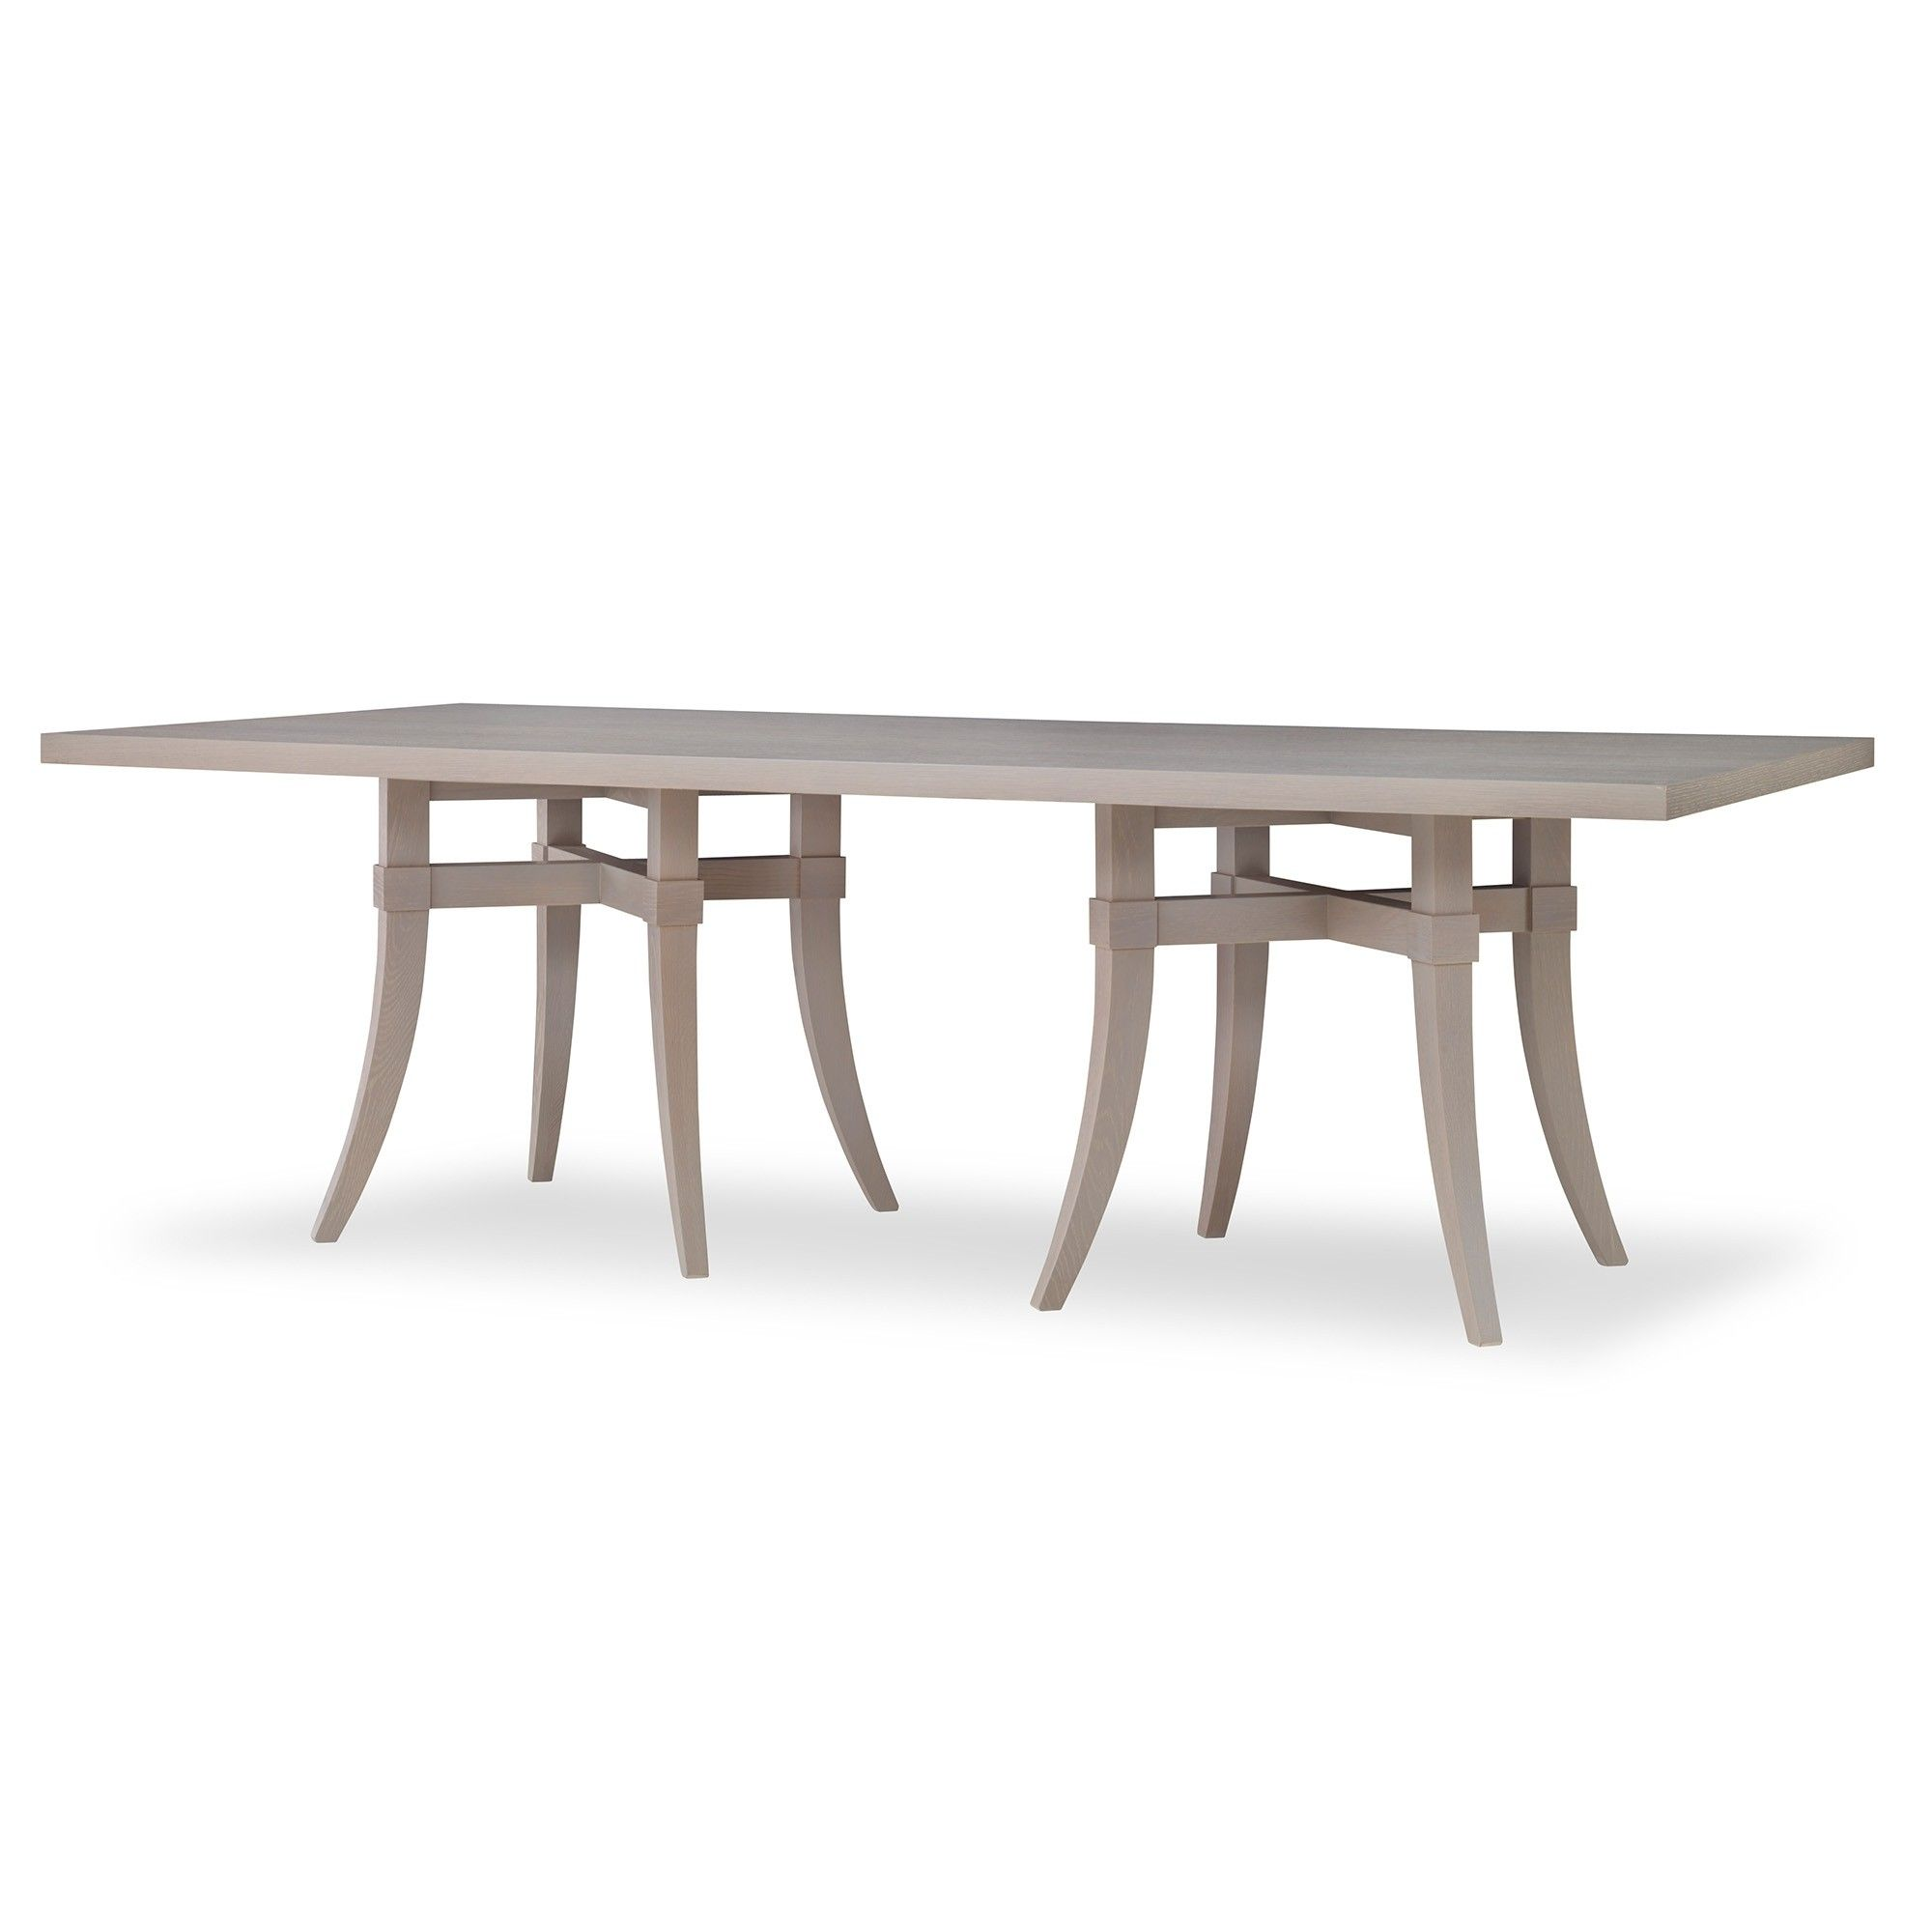 lexington item double table rs detail dining tables type zavala pedestal rectangular loggia items